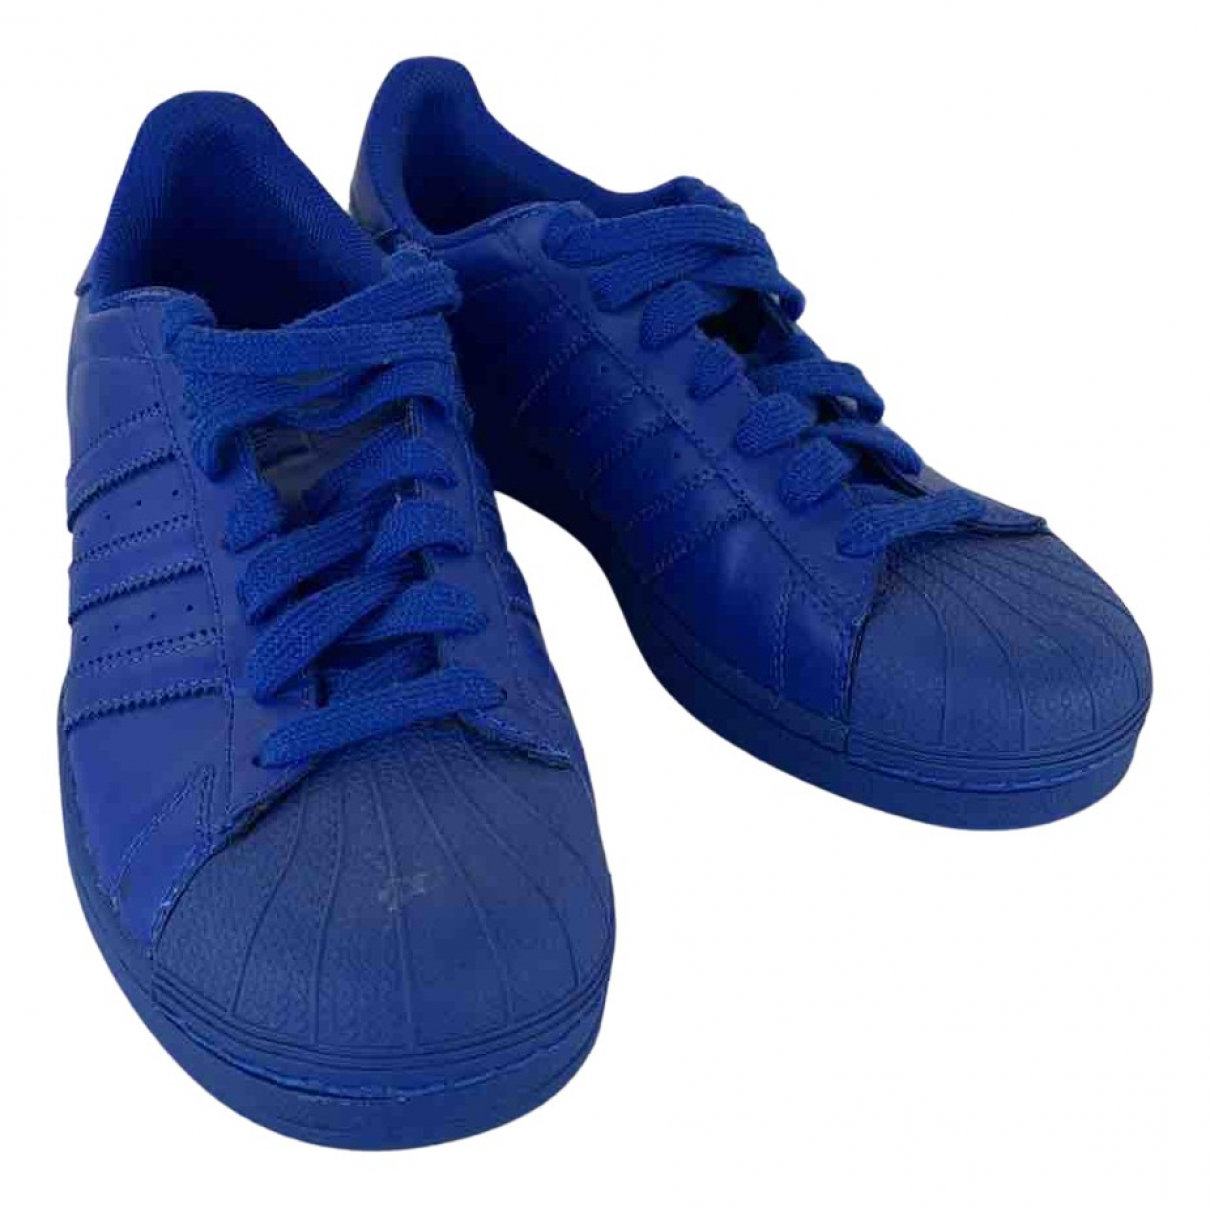 Adidas X Pharrell Williams N Blue Leather Trainers for Men 41.5 EU